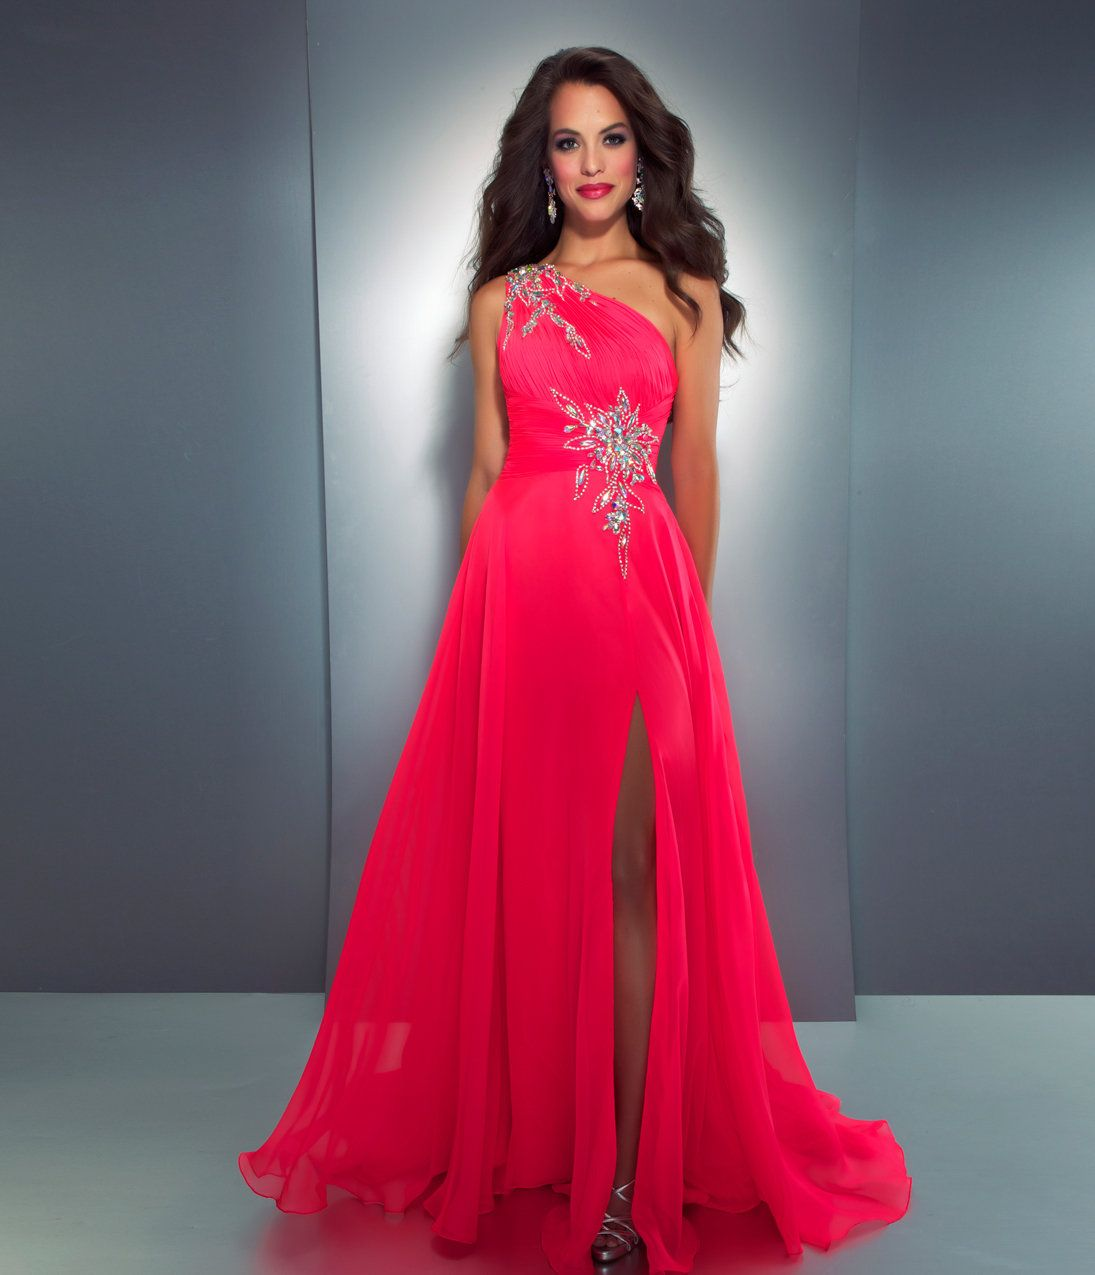 10 Best images about Neon on Pinterest - One shoulder- Pink prom ...